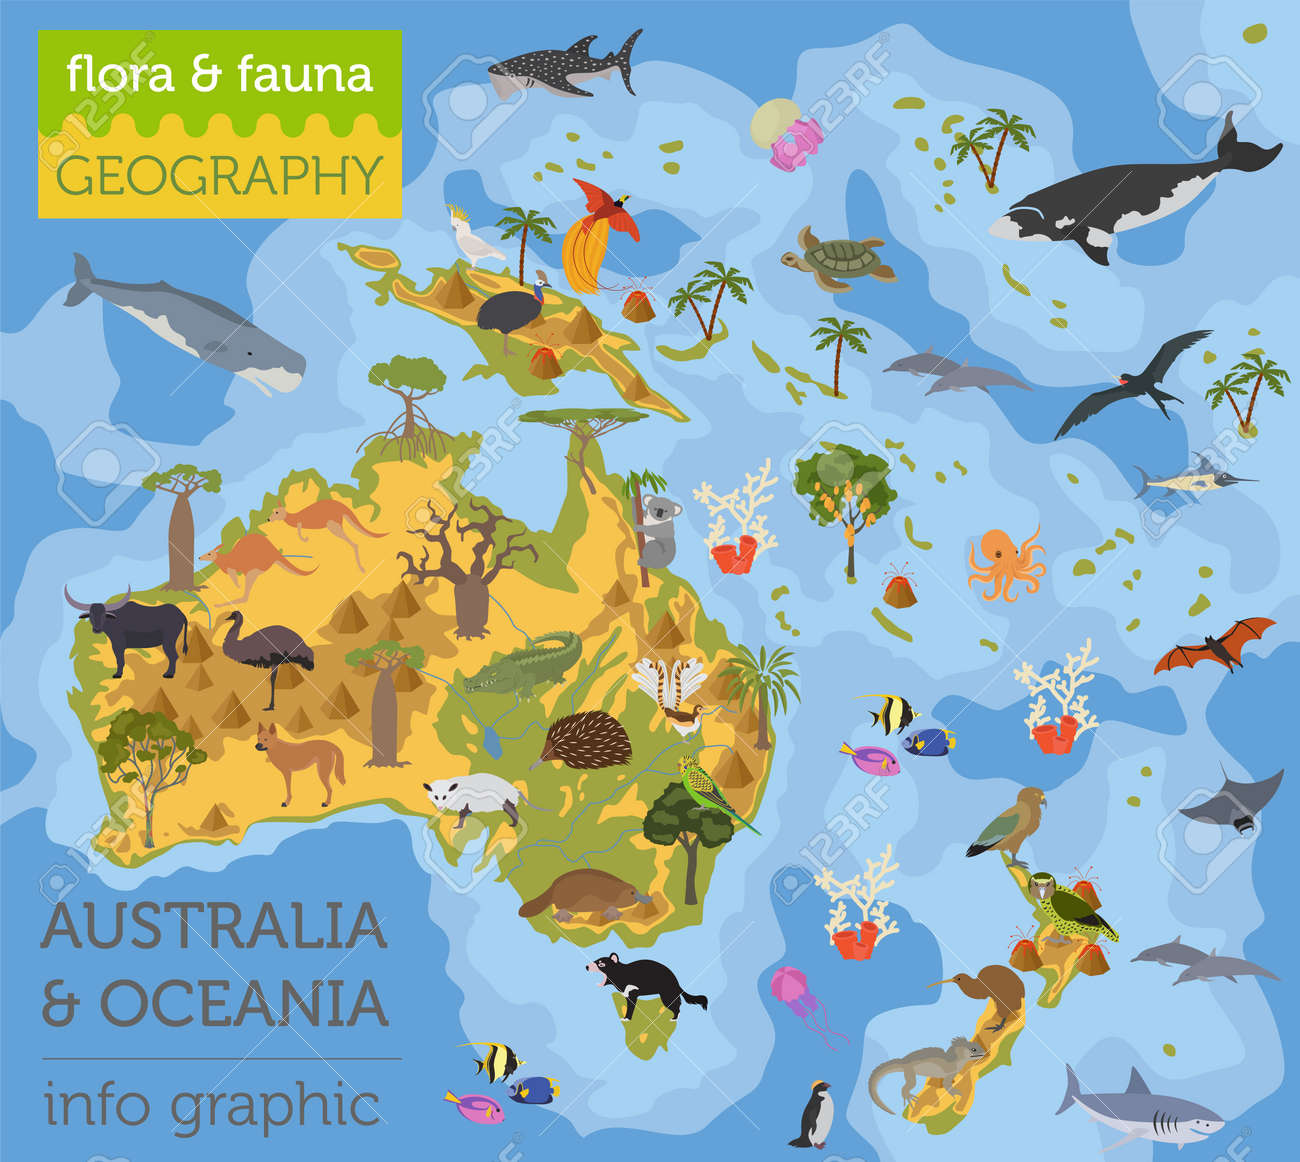 australia and oceania flora and fauna map flat elements animals birds and sea